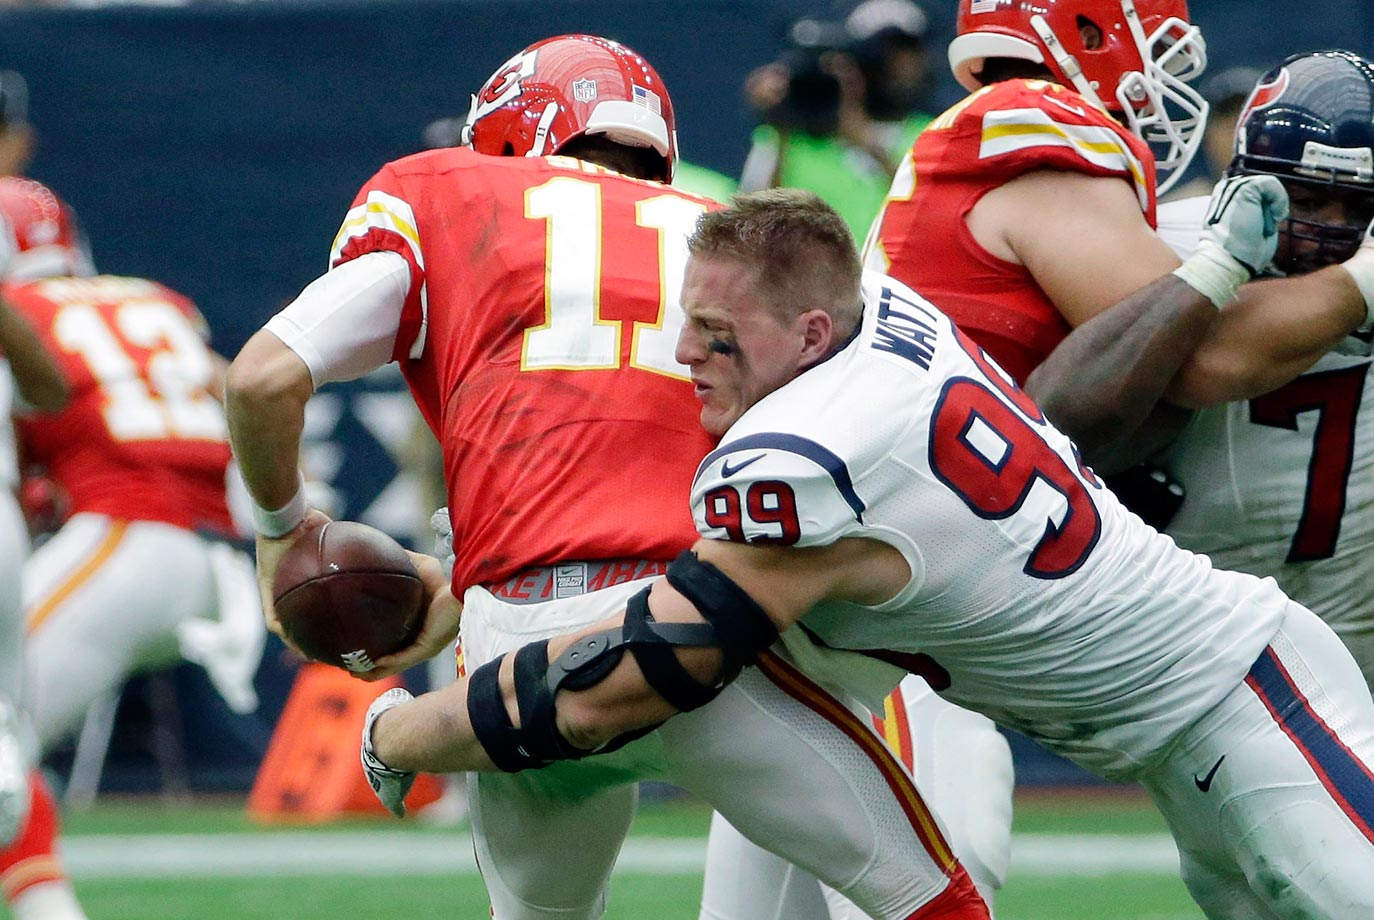 J.J. Watt of the Houston Texans sacks Alex Smith of the Kansas City Chiefs.